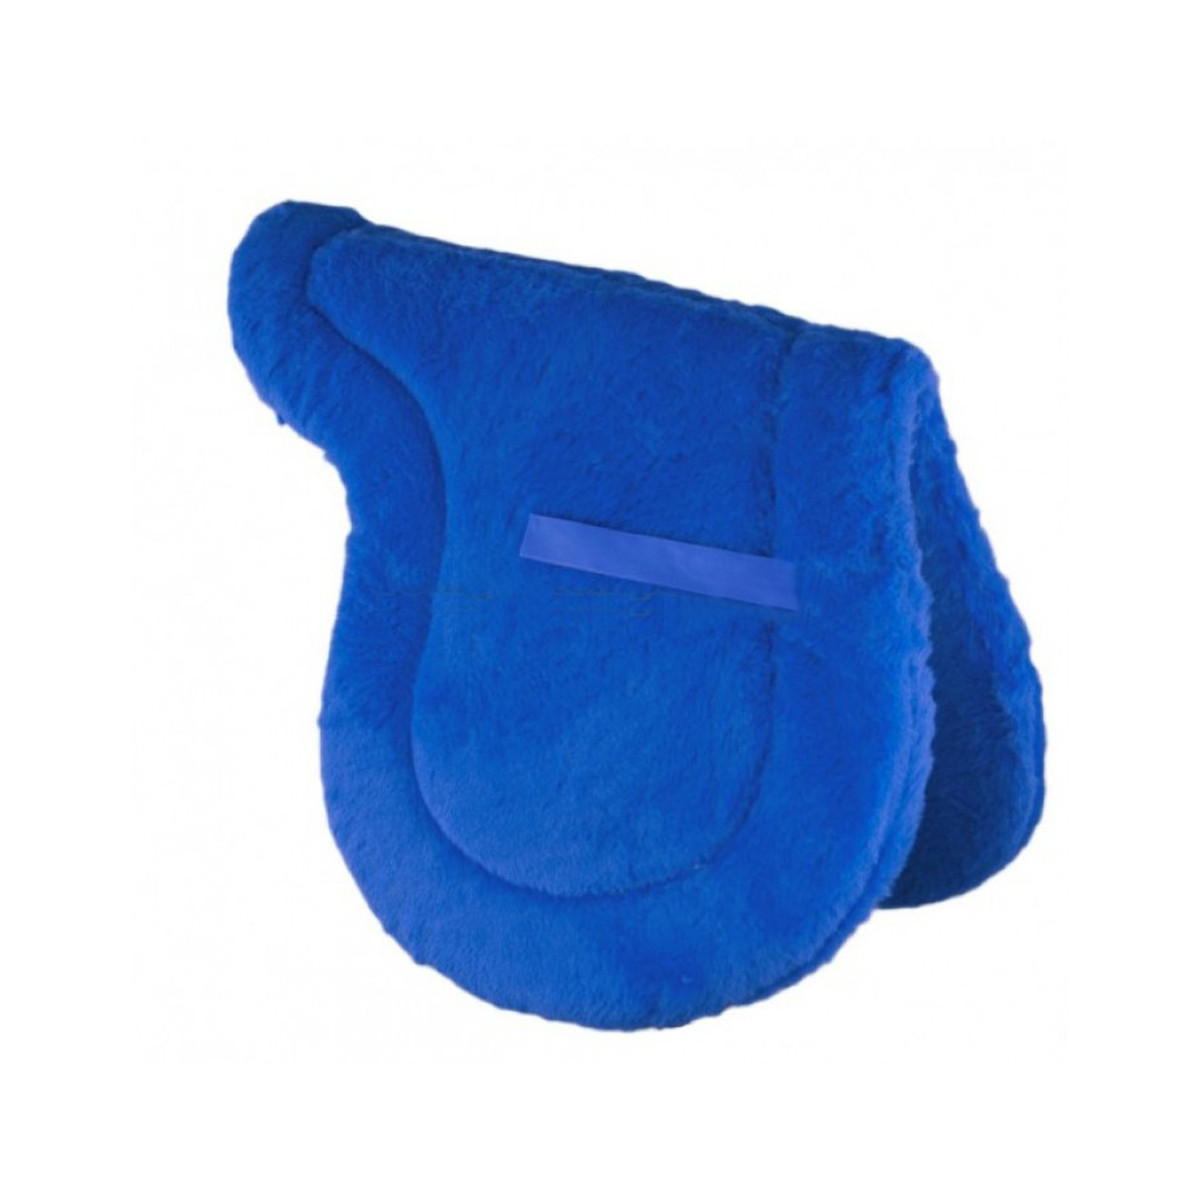 Synthetic Fleece Shaped Saddle Pad